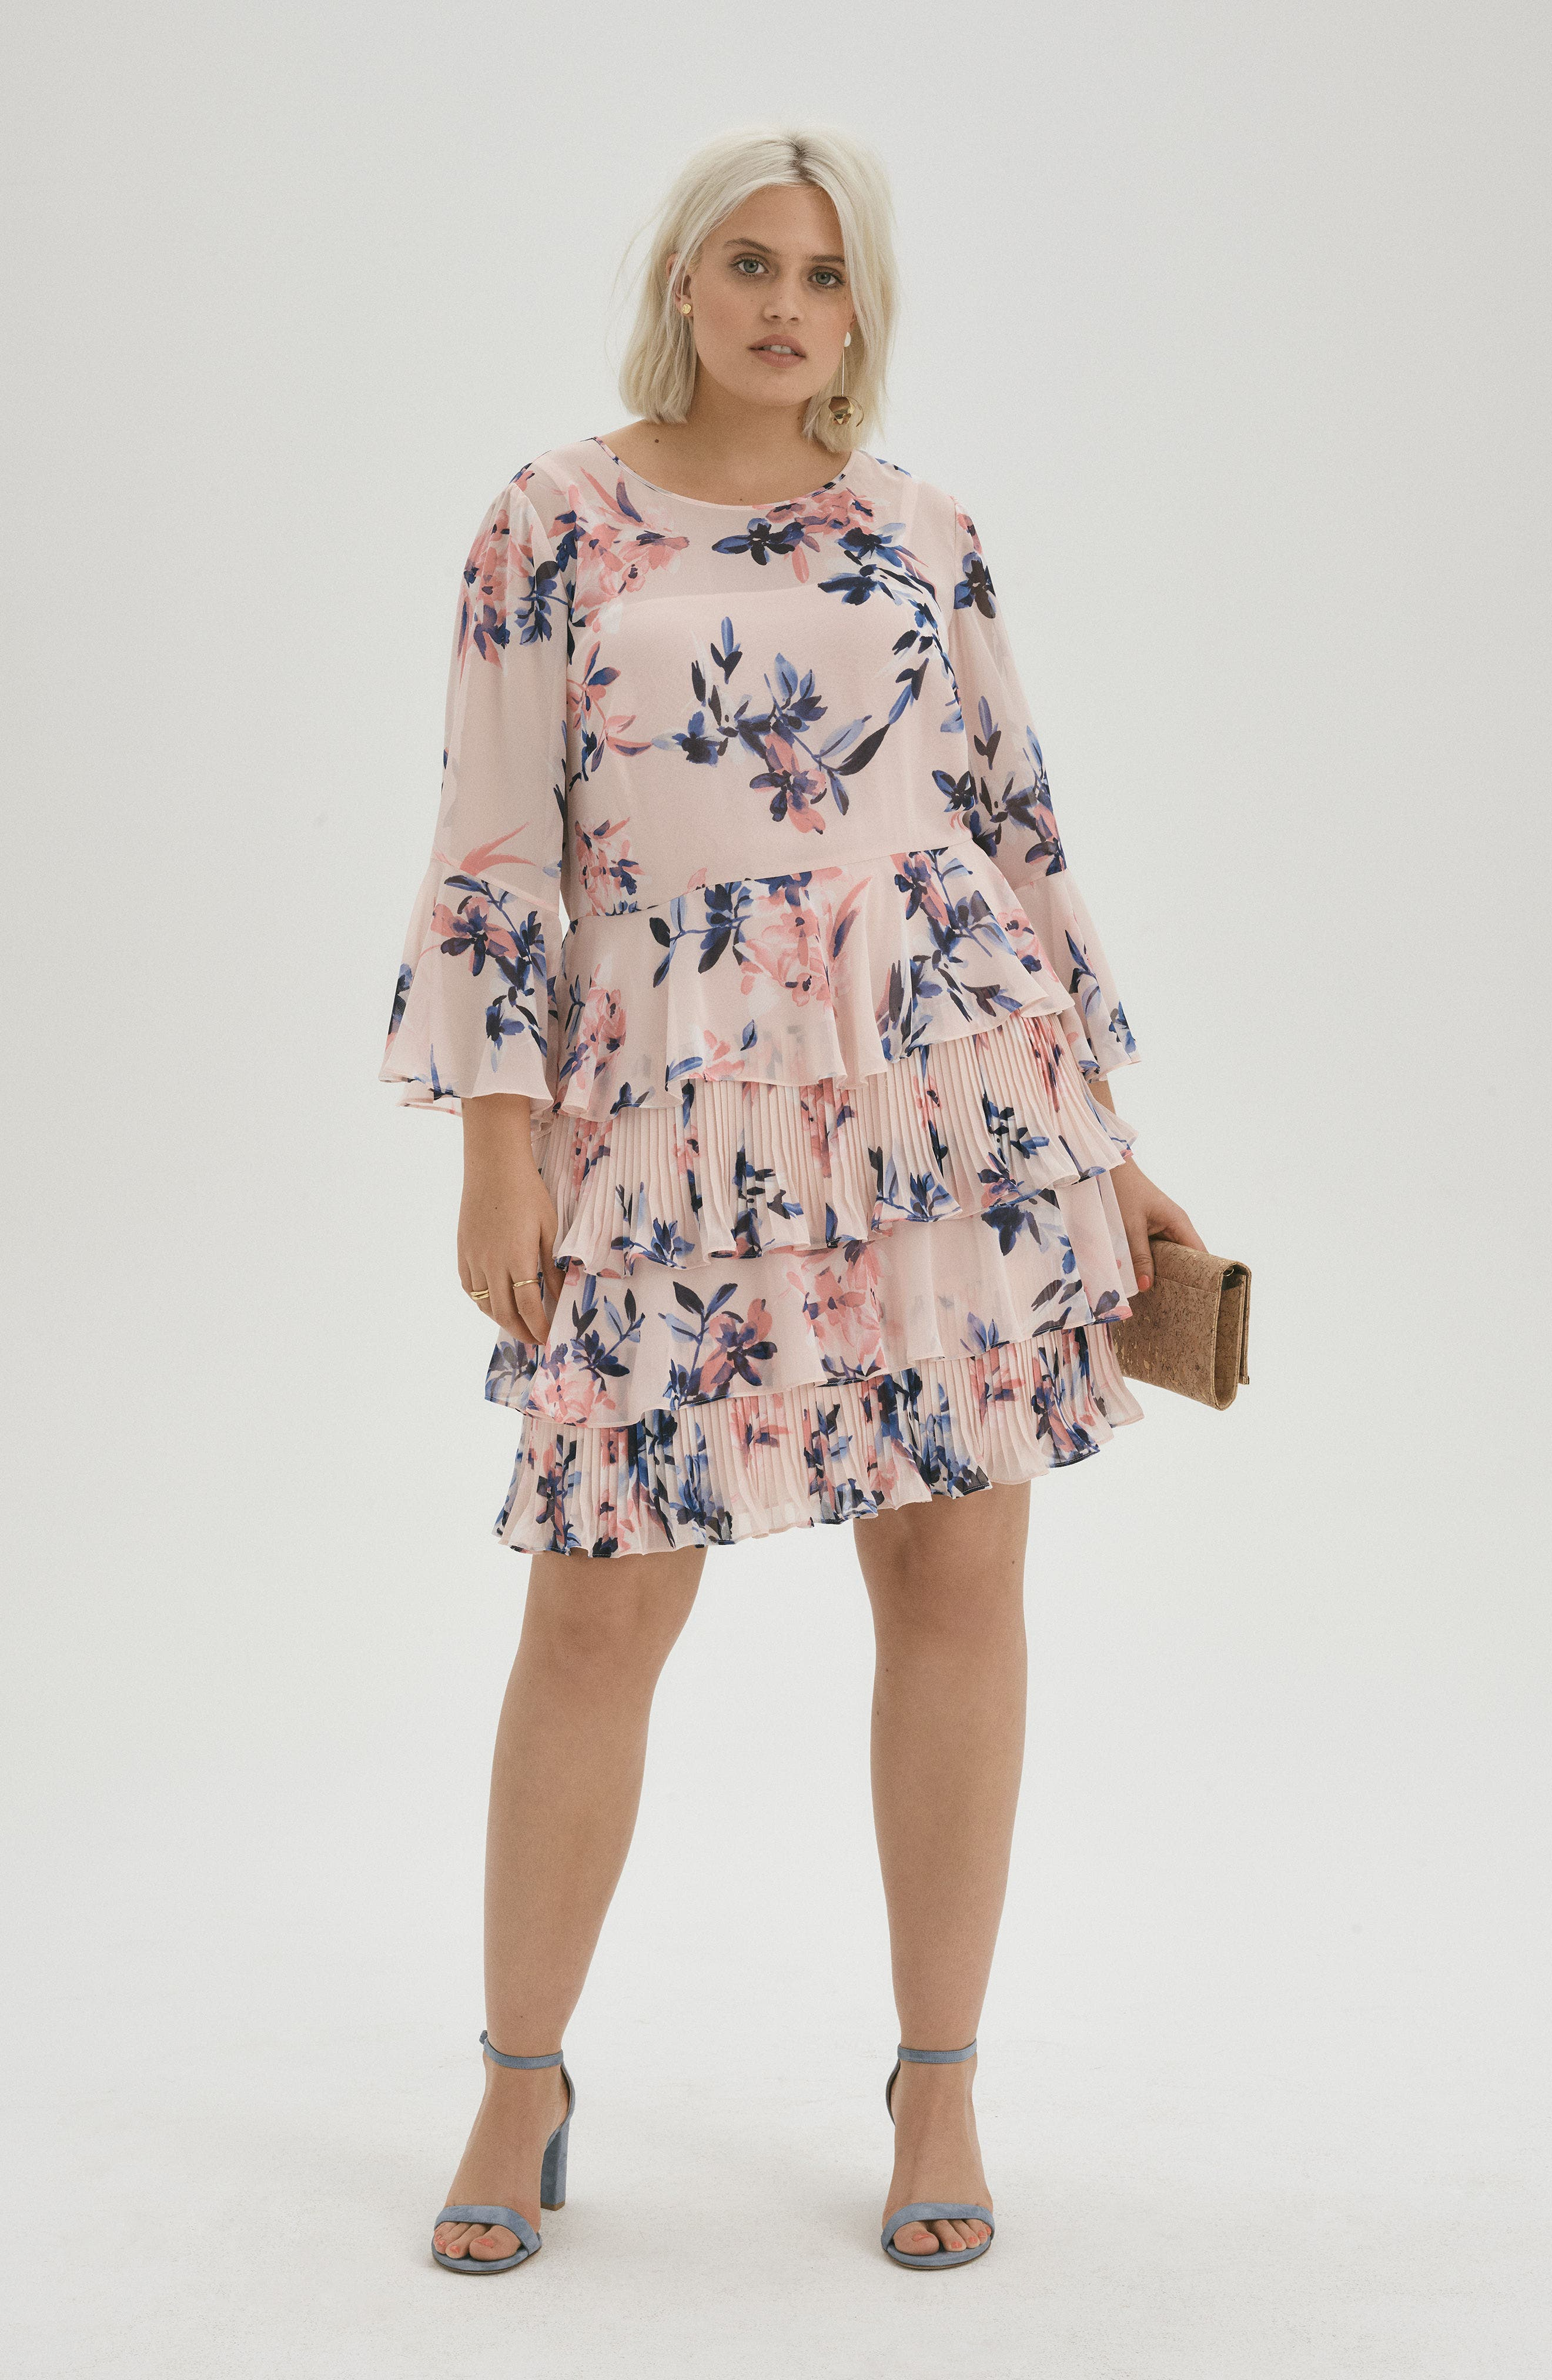 Bell Sleeve Tiered Ruffle Dress,                             Alternate thumbnail 8, color,                             684